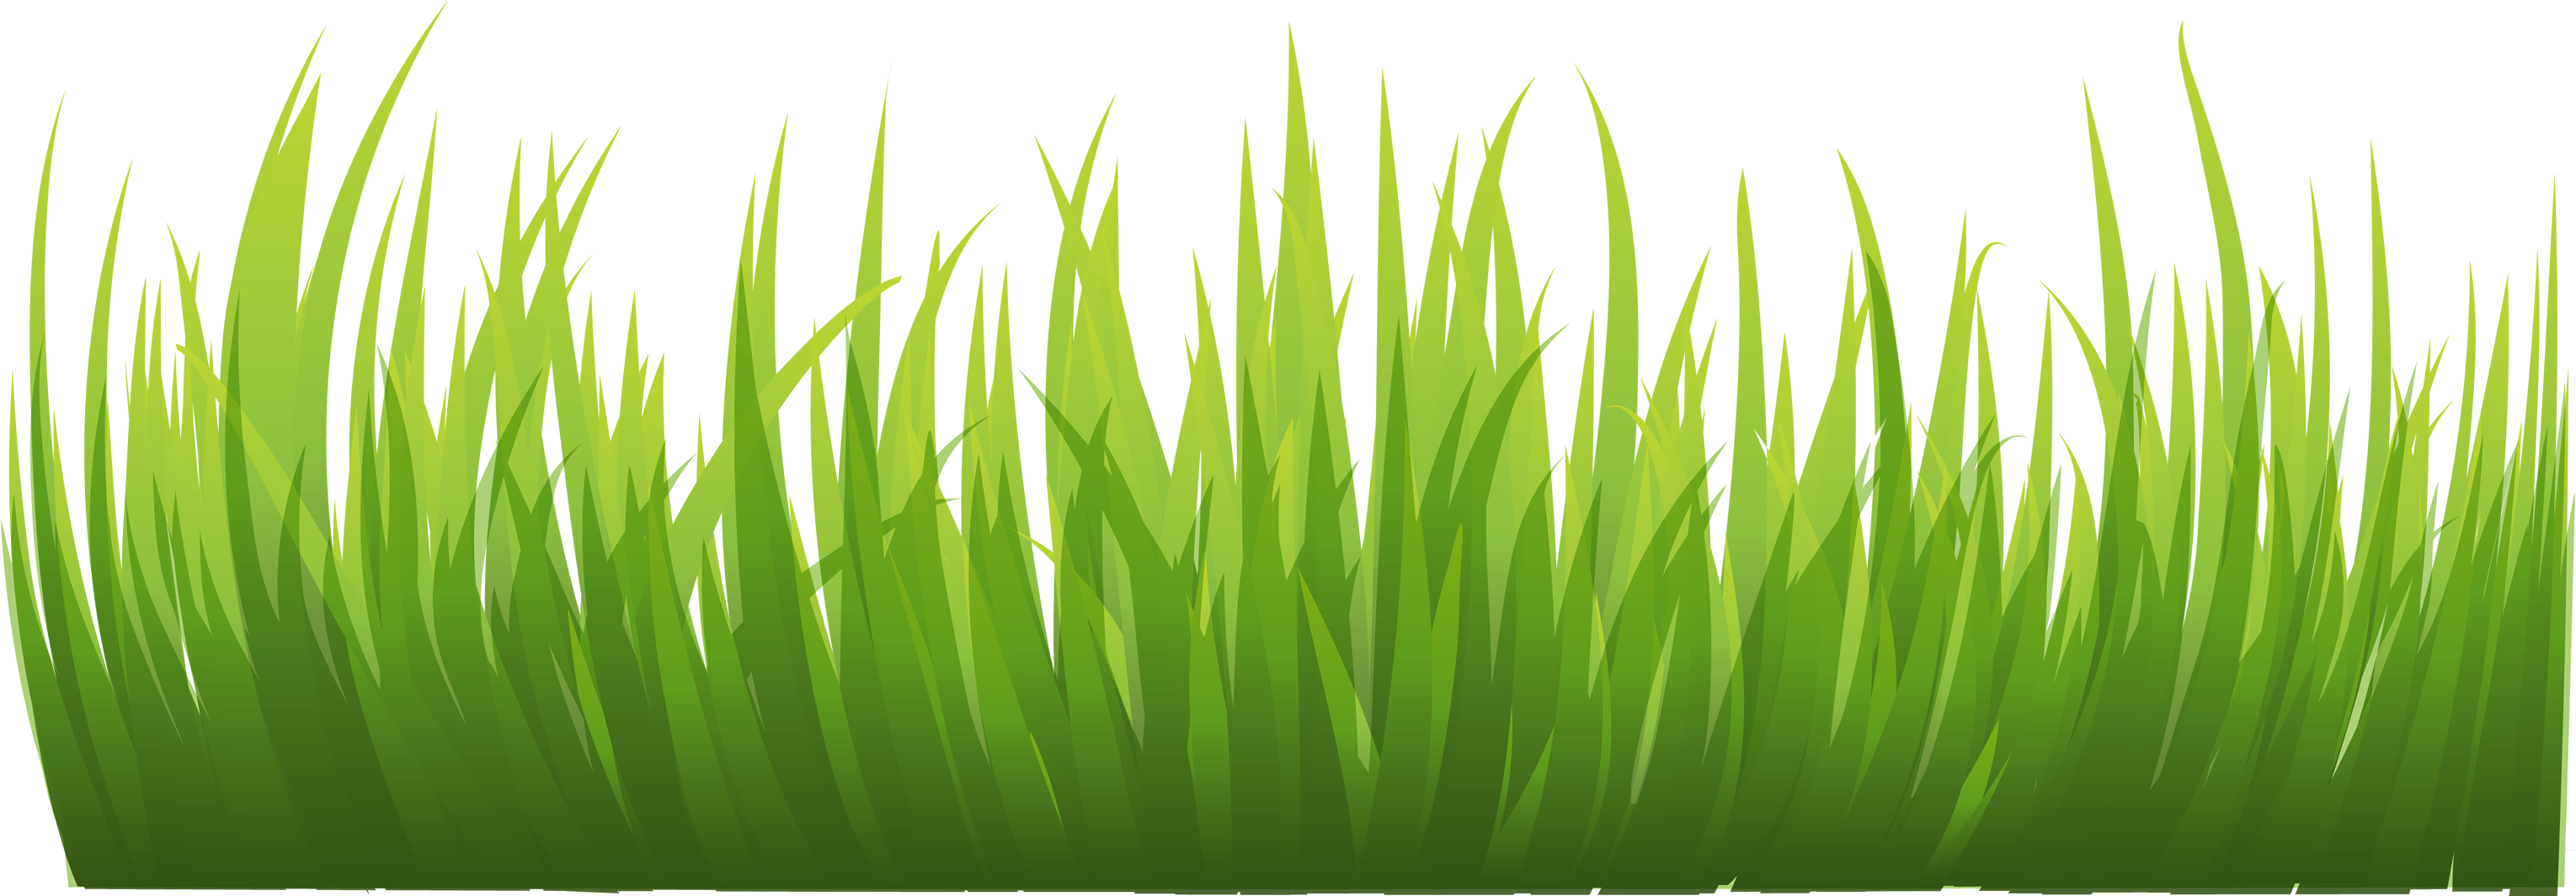 Png images pictures image. Land clipart carpet grass